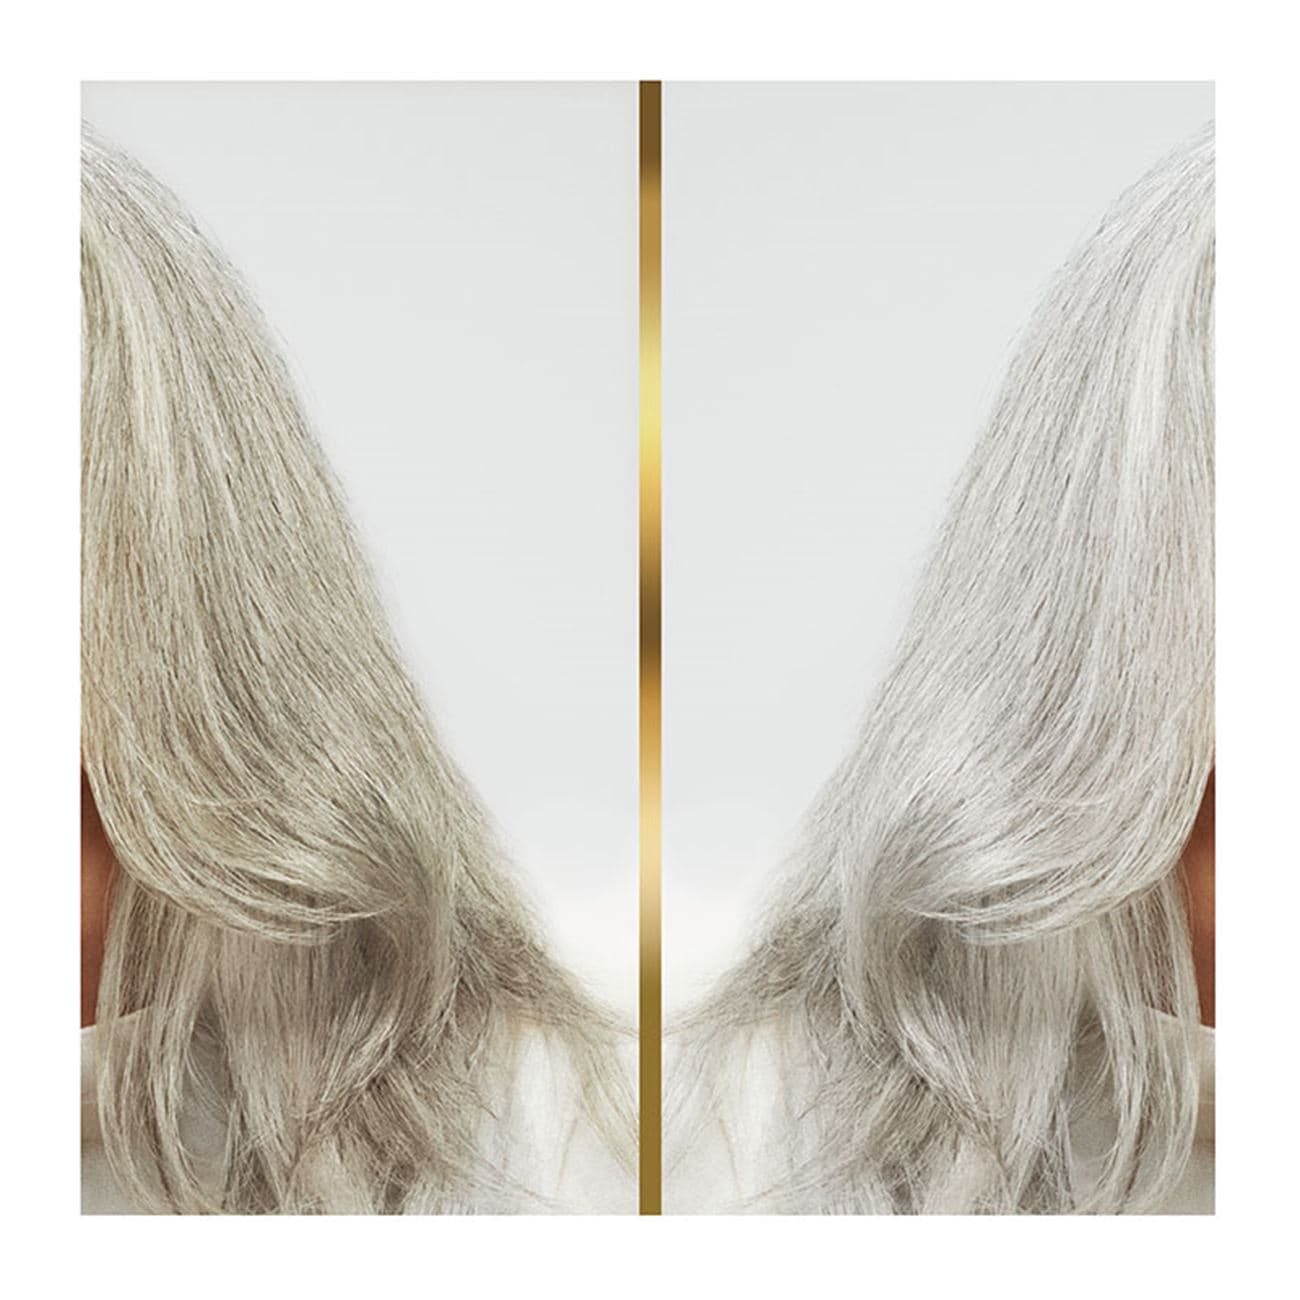 Pro-V Hair Biology Μάσκα Grey & Glowing